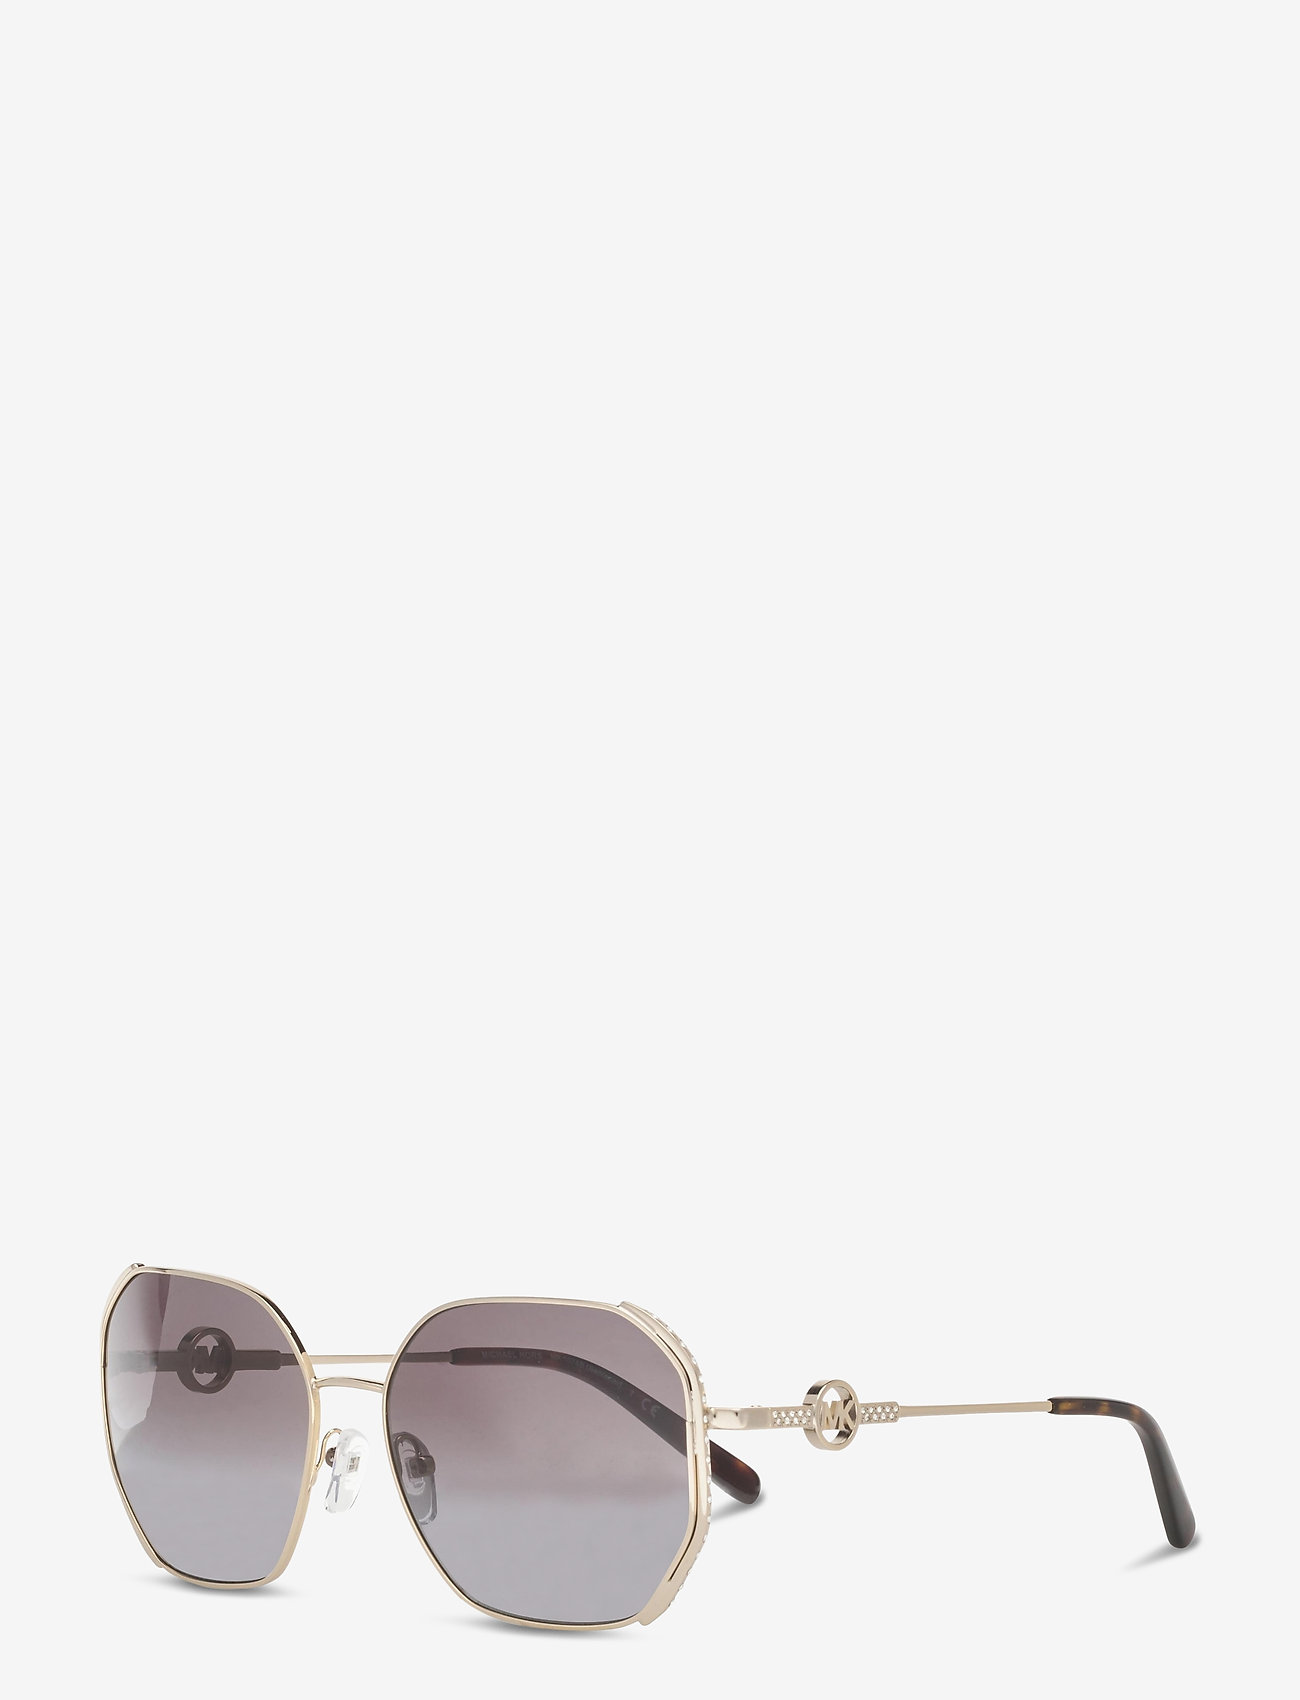 Michael Kors Sunglasses - SANTORINI - rechthoekig model - dark grey gradient - 1